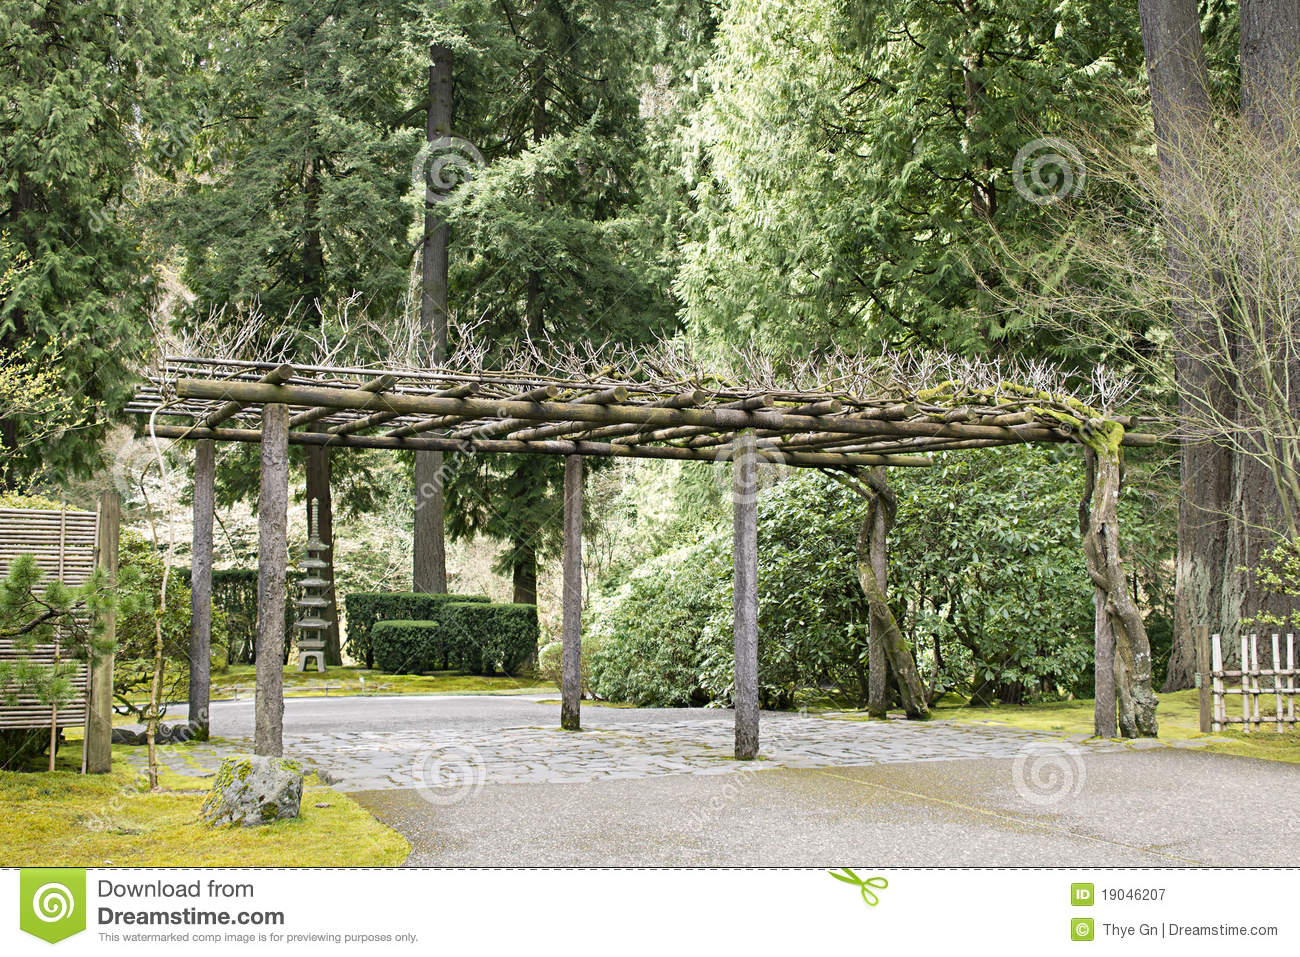 Trellis structure at portland japanes garden in winter